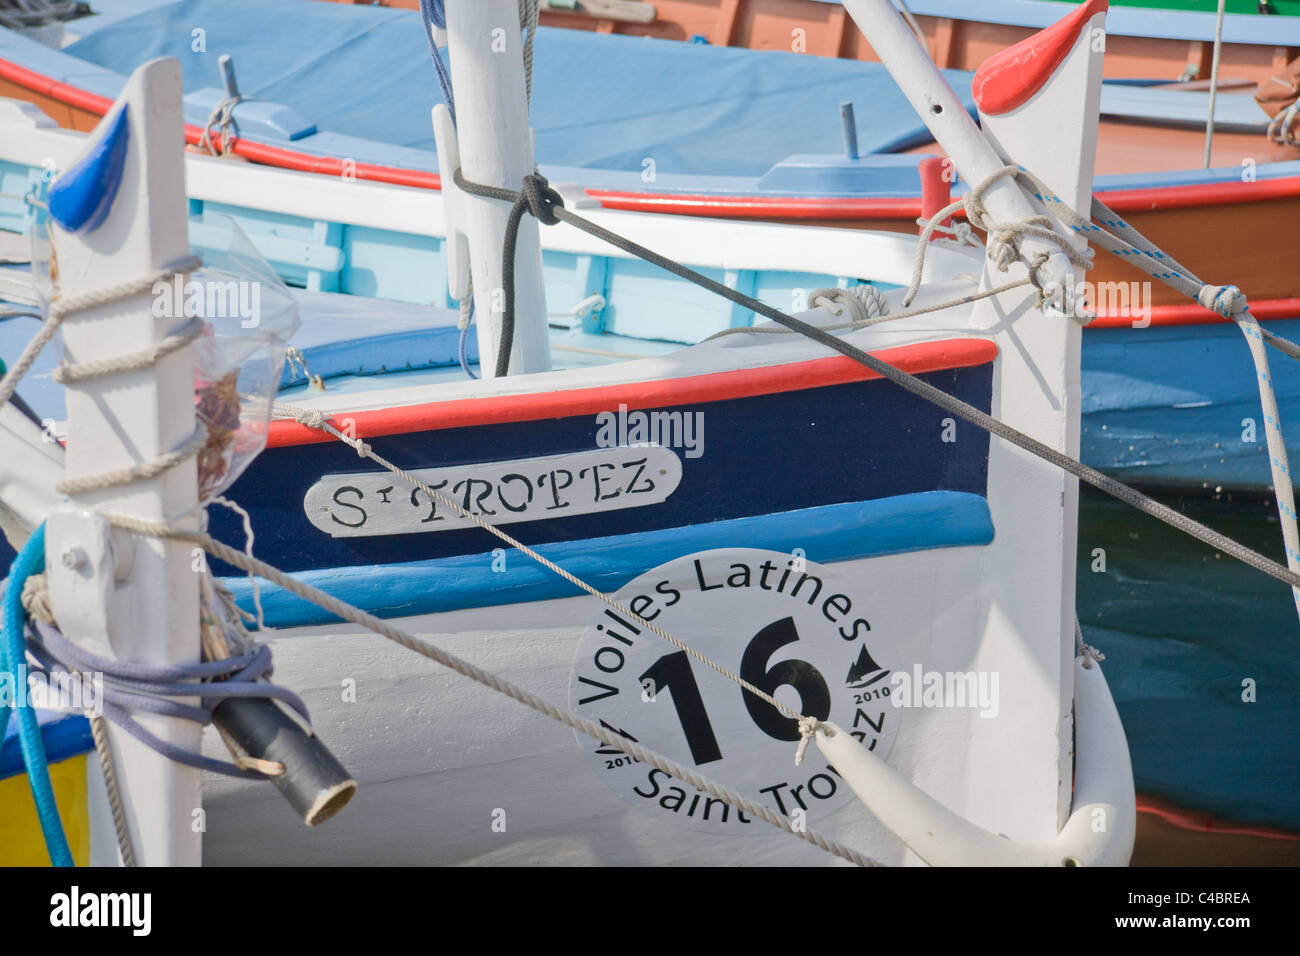 "A boat named ""St. Tropez"" is situated in the port of Saint-Tropez at the Cote d'Azur/ Provence, France Stock Photo"